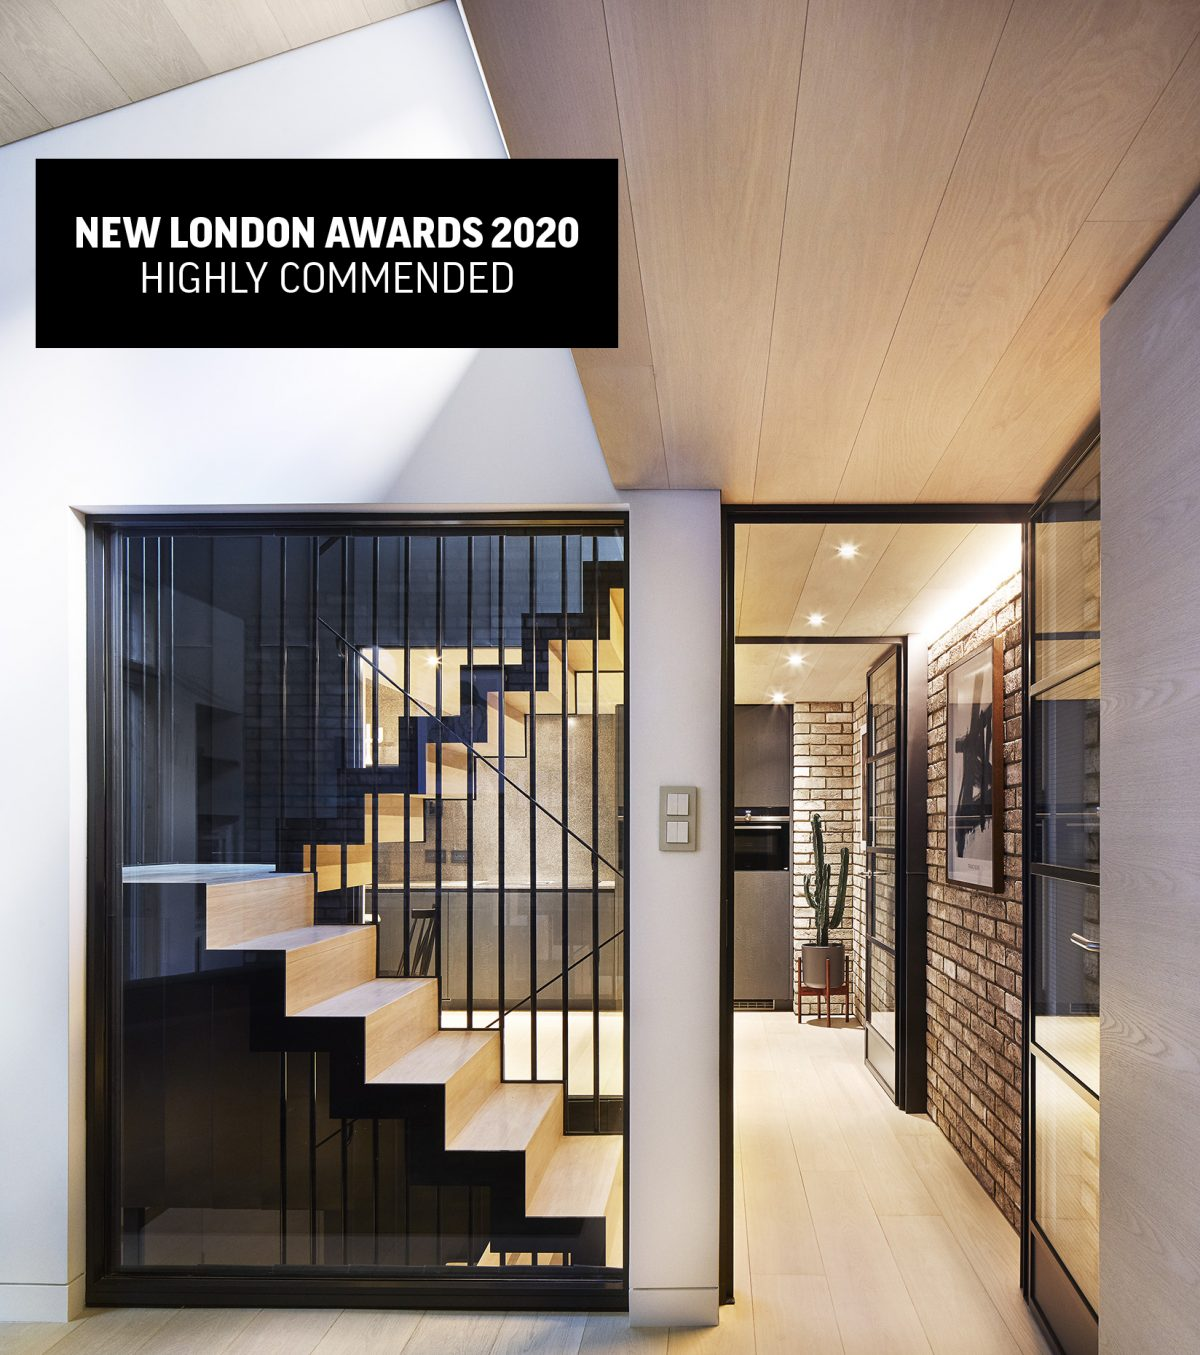 New London Awards 2020 Highly Commended